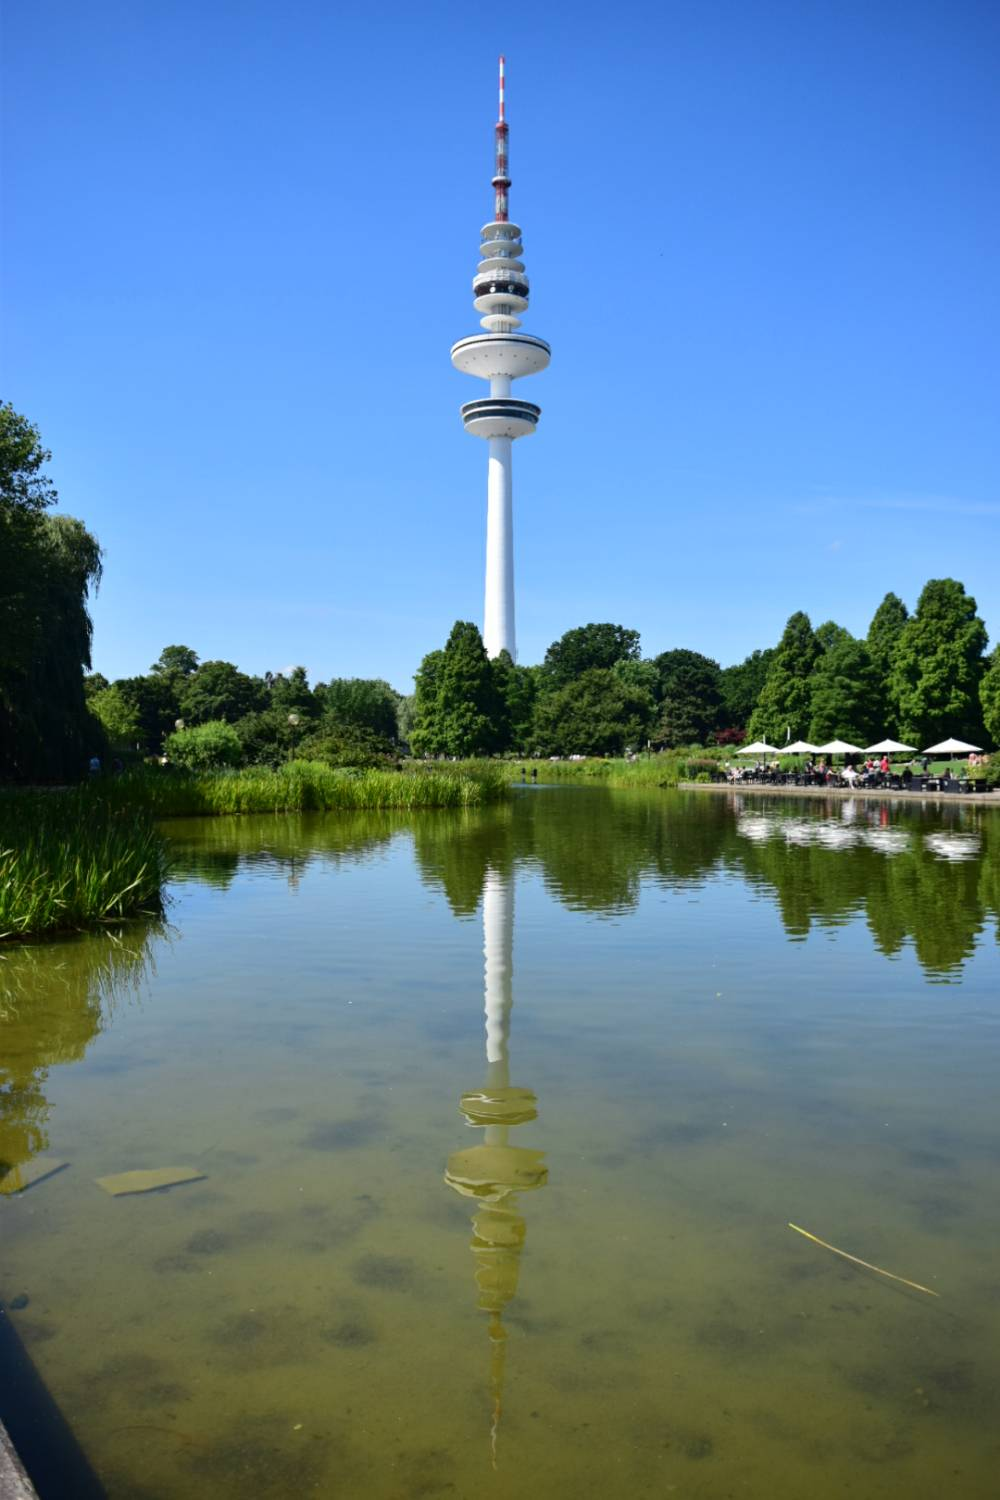 Hamburgs TV Tower